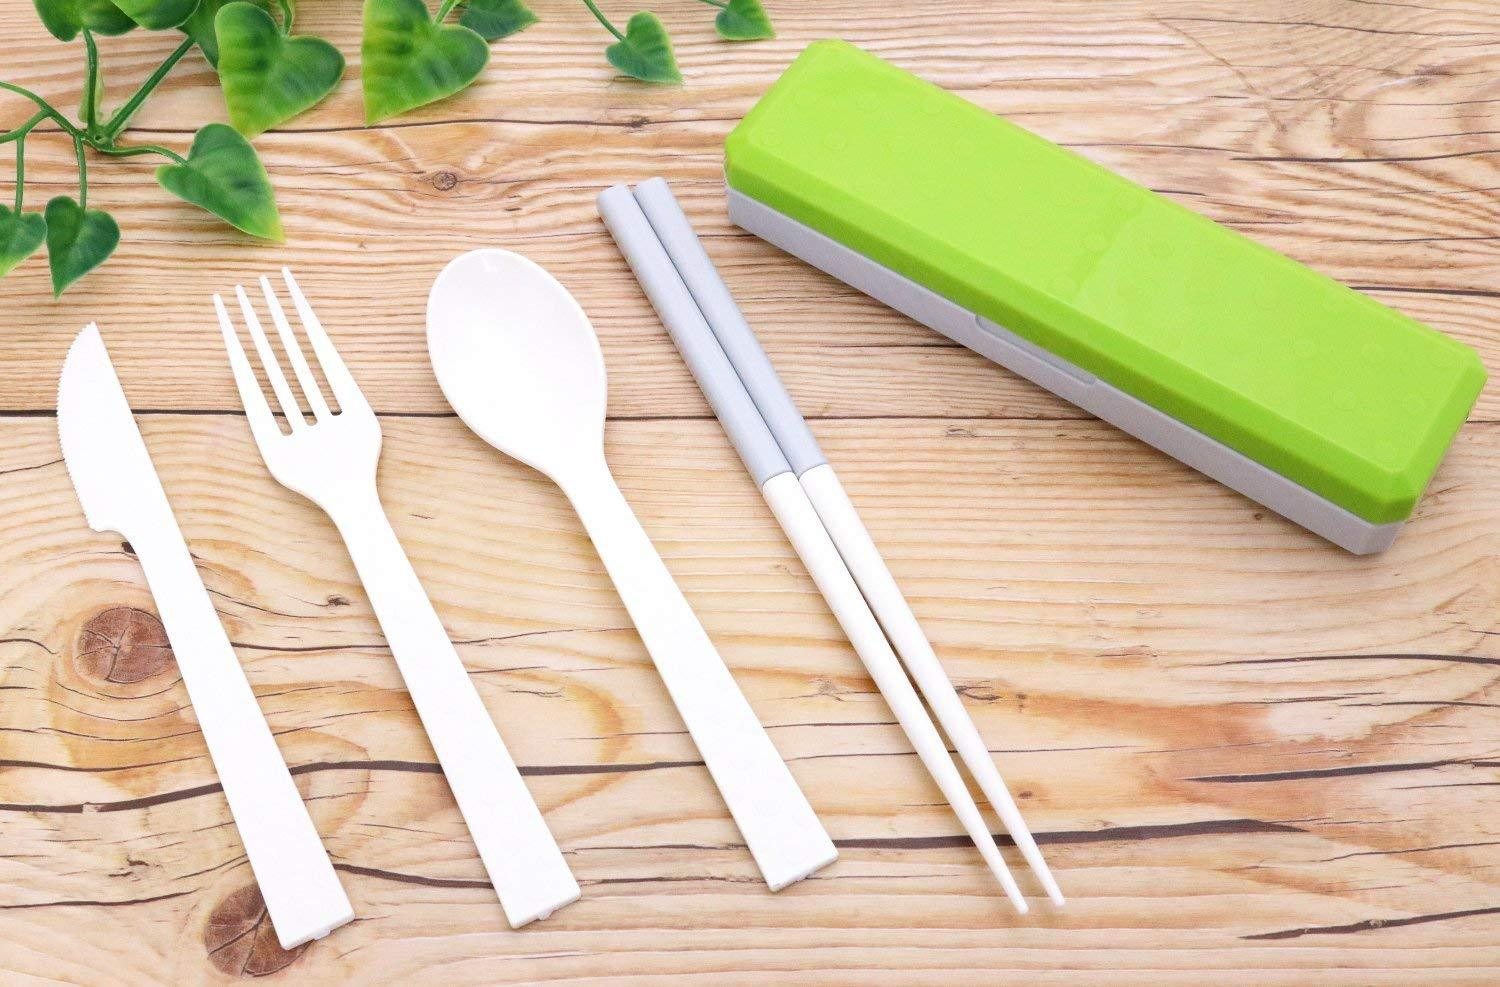 GO OUT Cutlery | Greenery by Kokubo - Bento&co Japanese Bento Lunch Boxes and Kitchenware Specialists